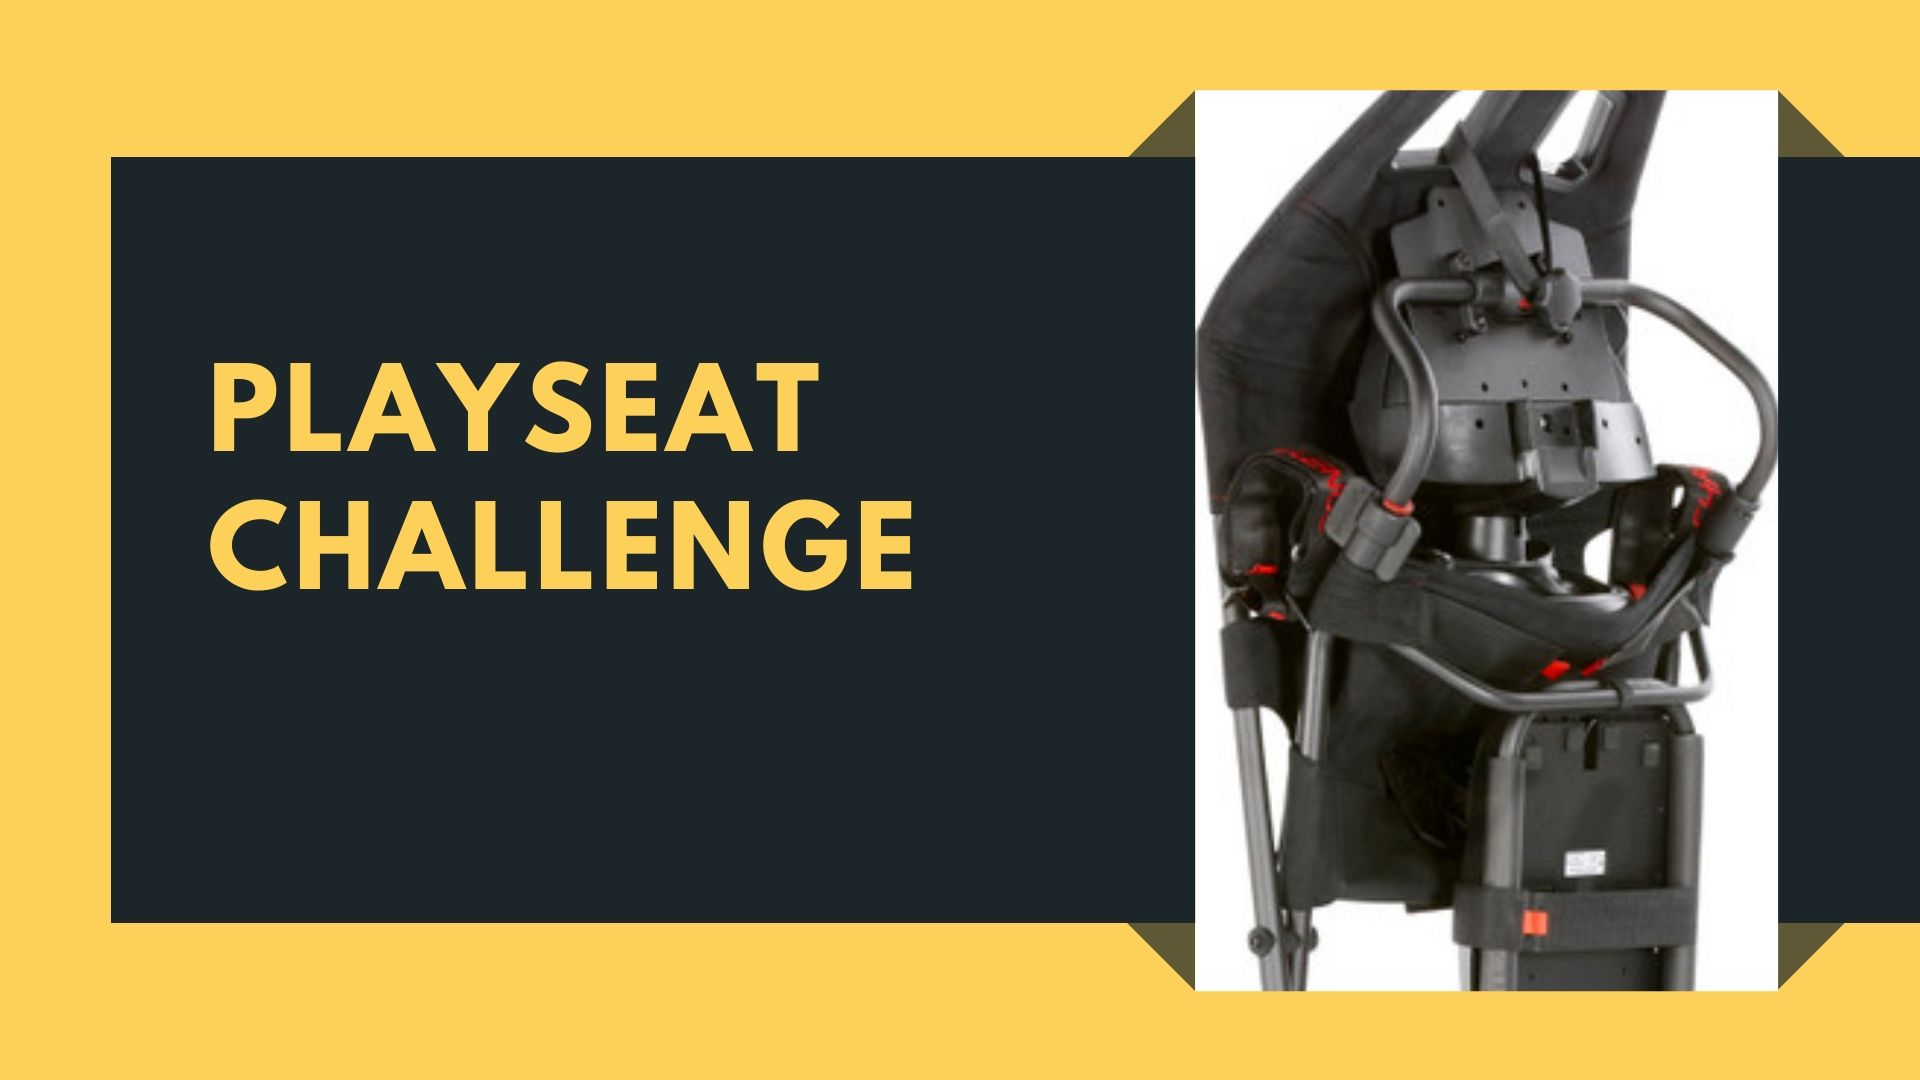 Playseat Challenge gamestoel voor gamers